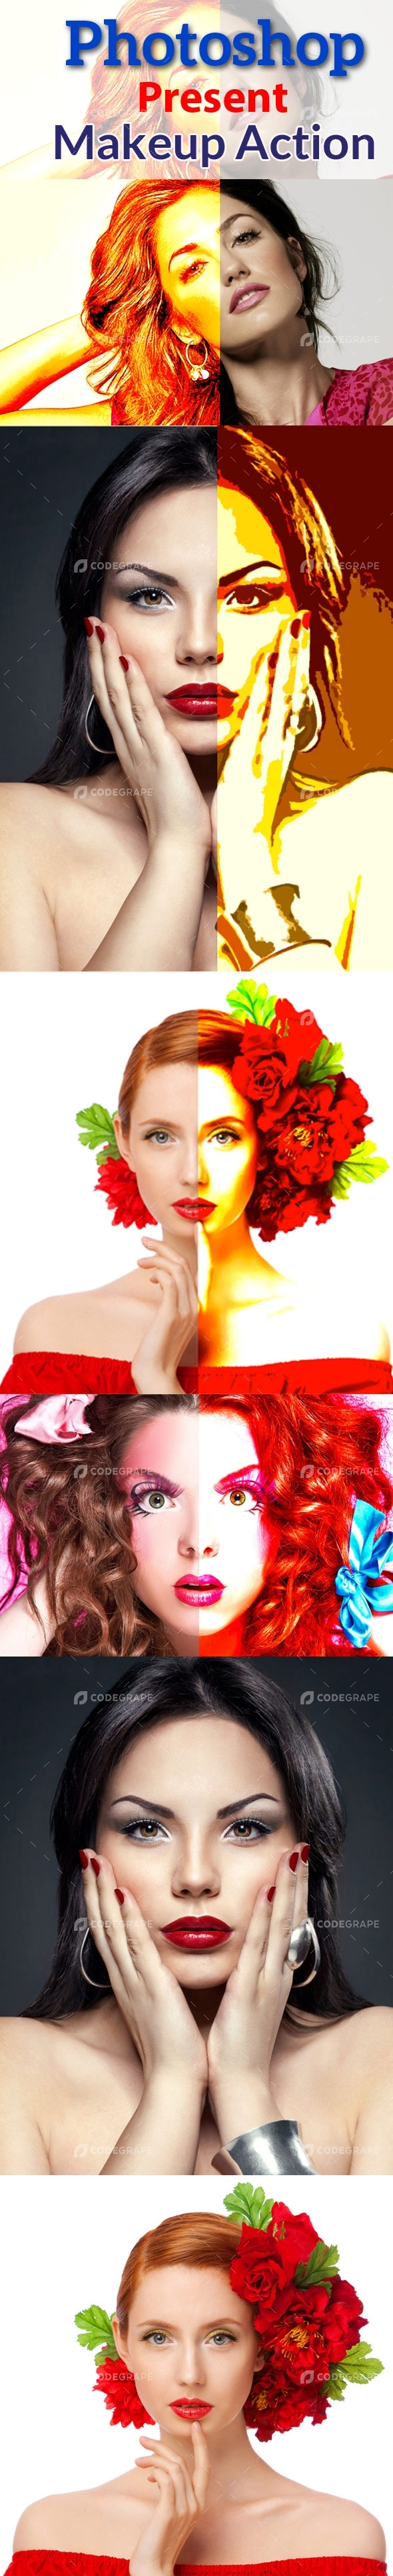 Photoshop Present Makeup Action